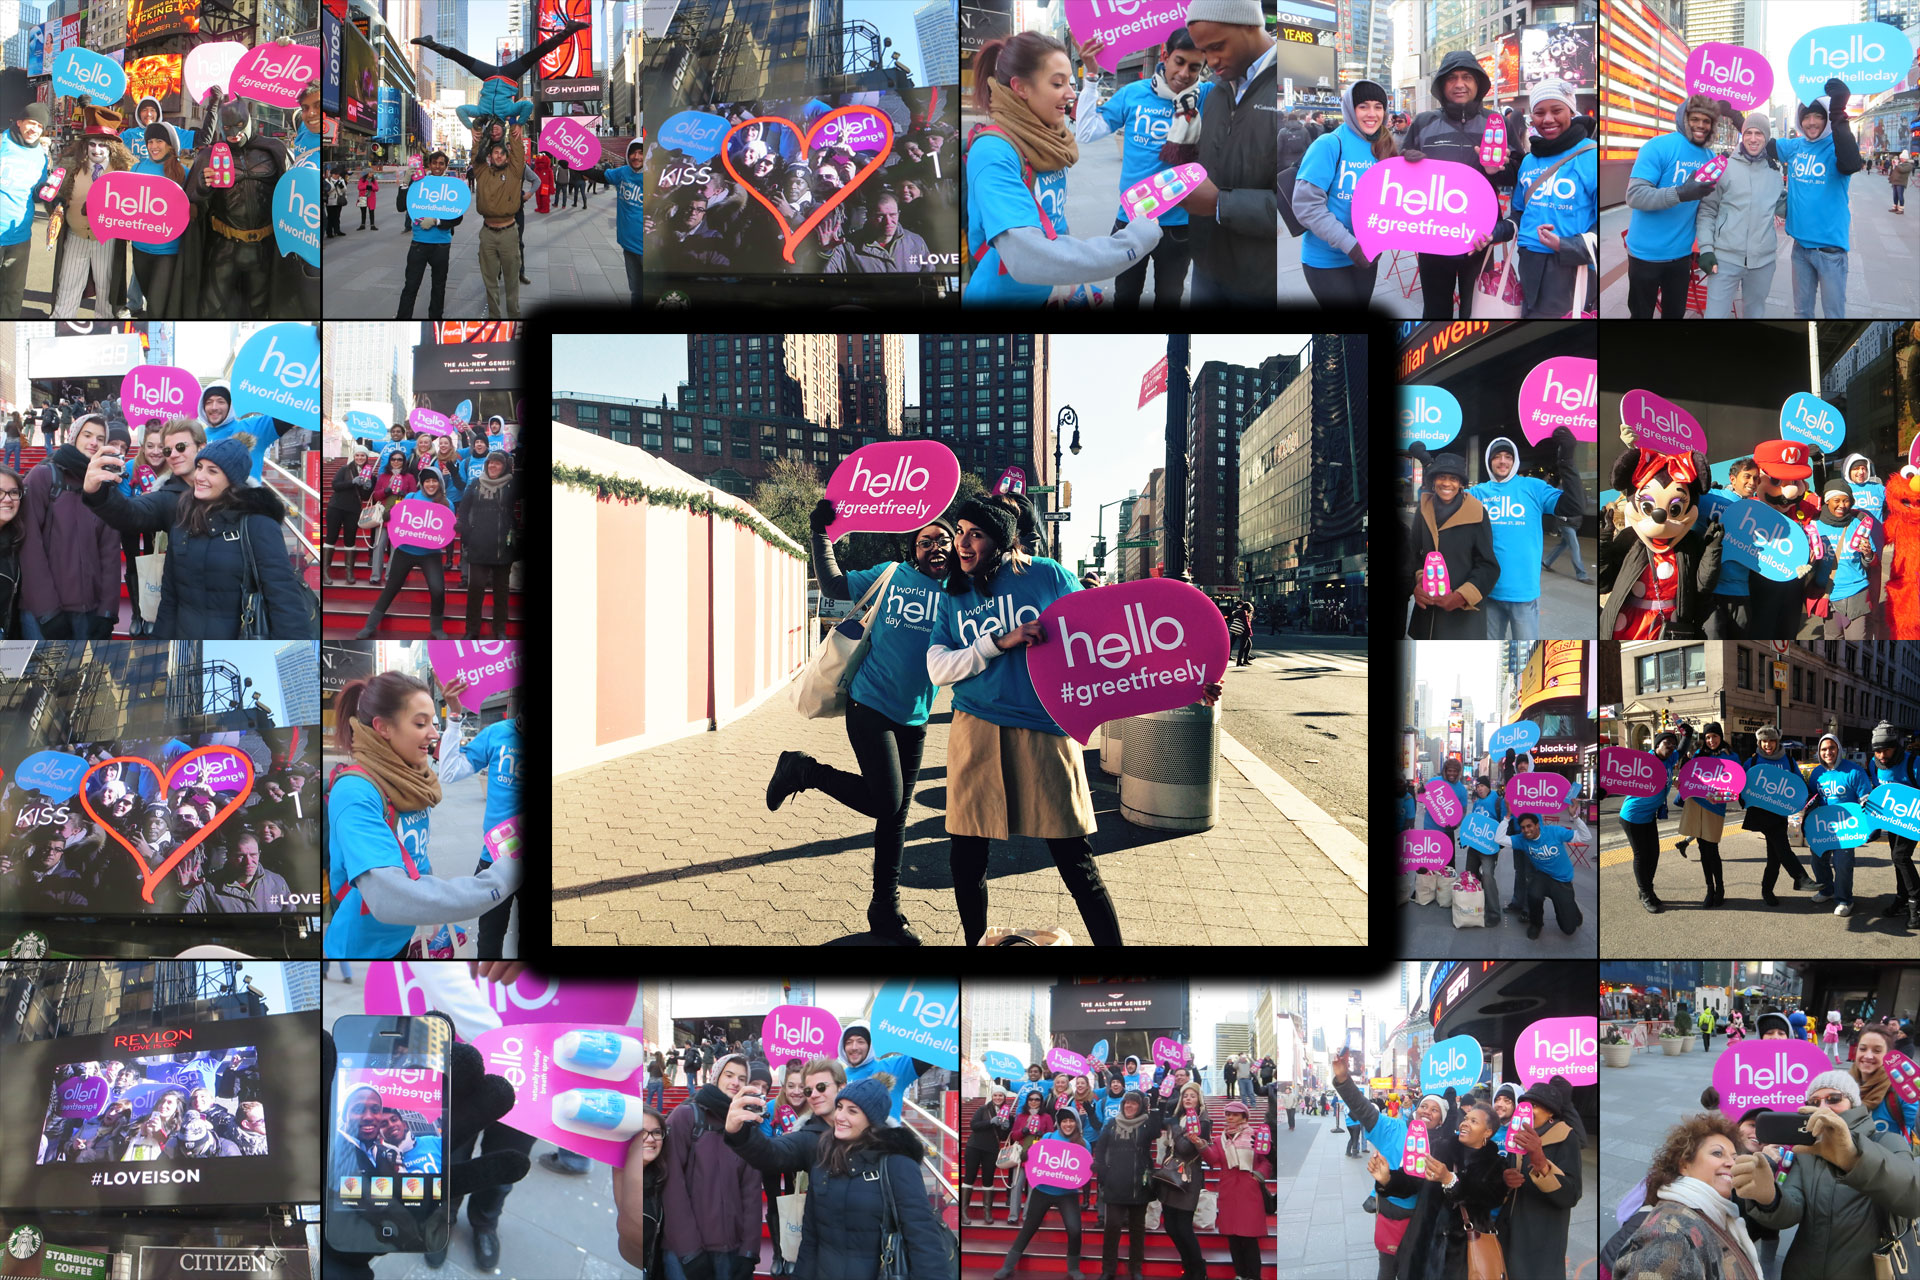 On Tour 24/7's Brand Ambassadors activating in NYC for World Hello Day.